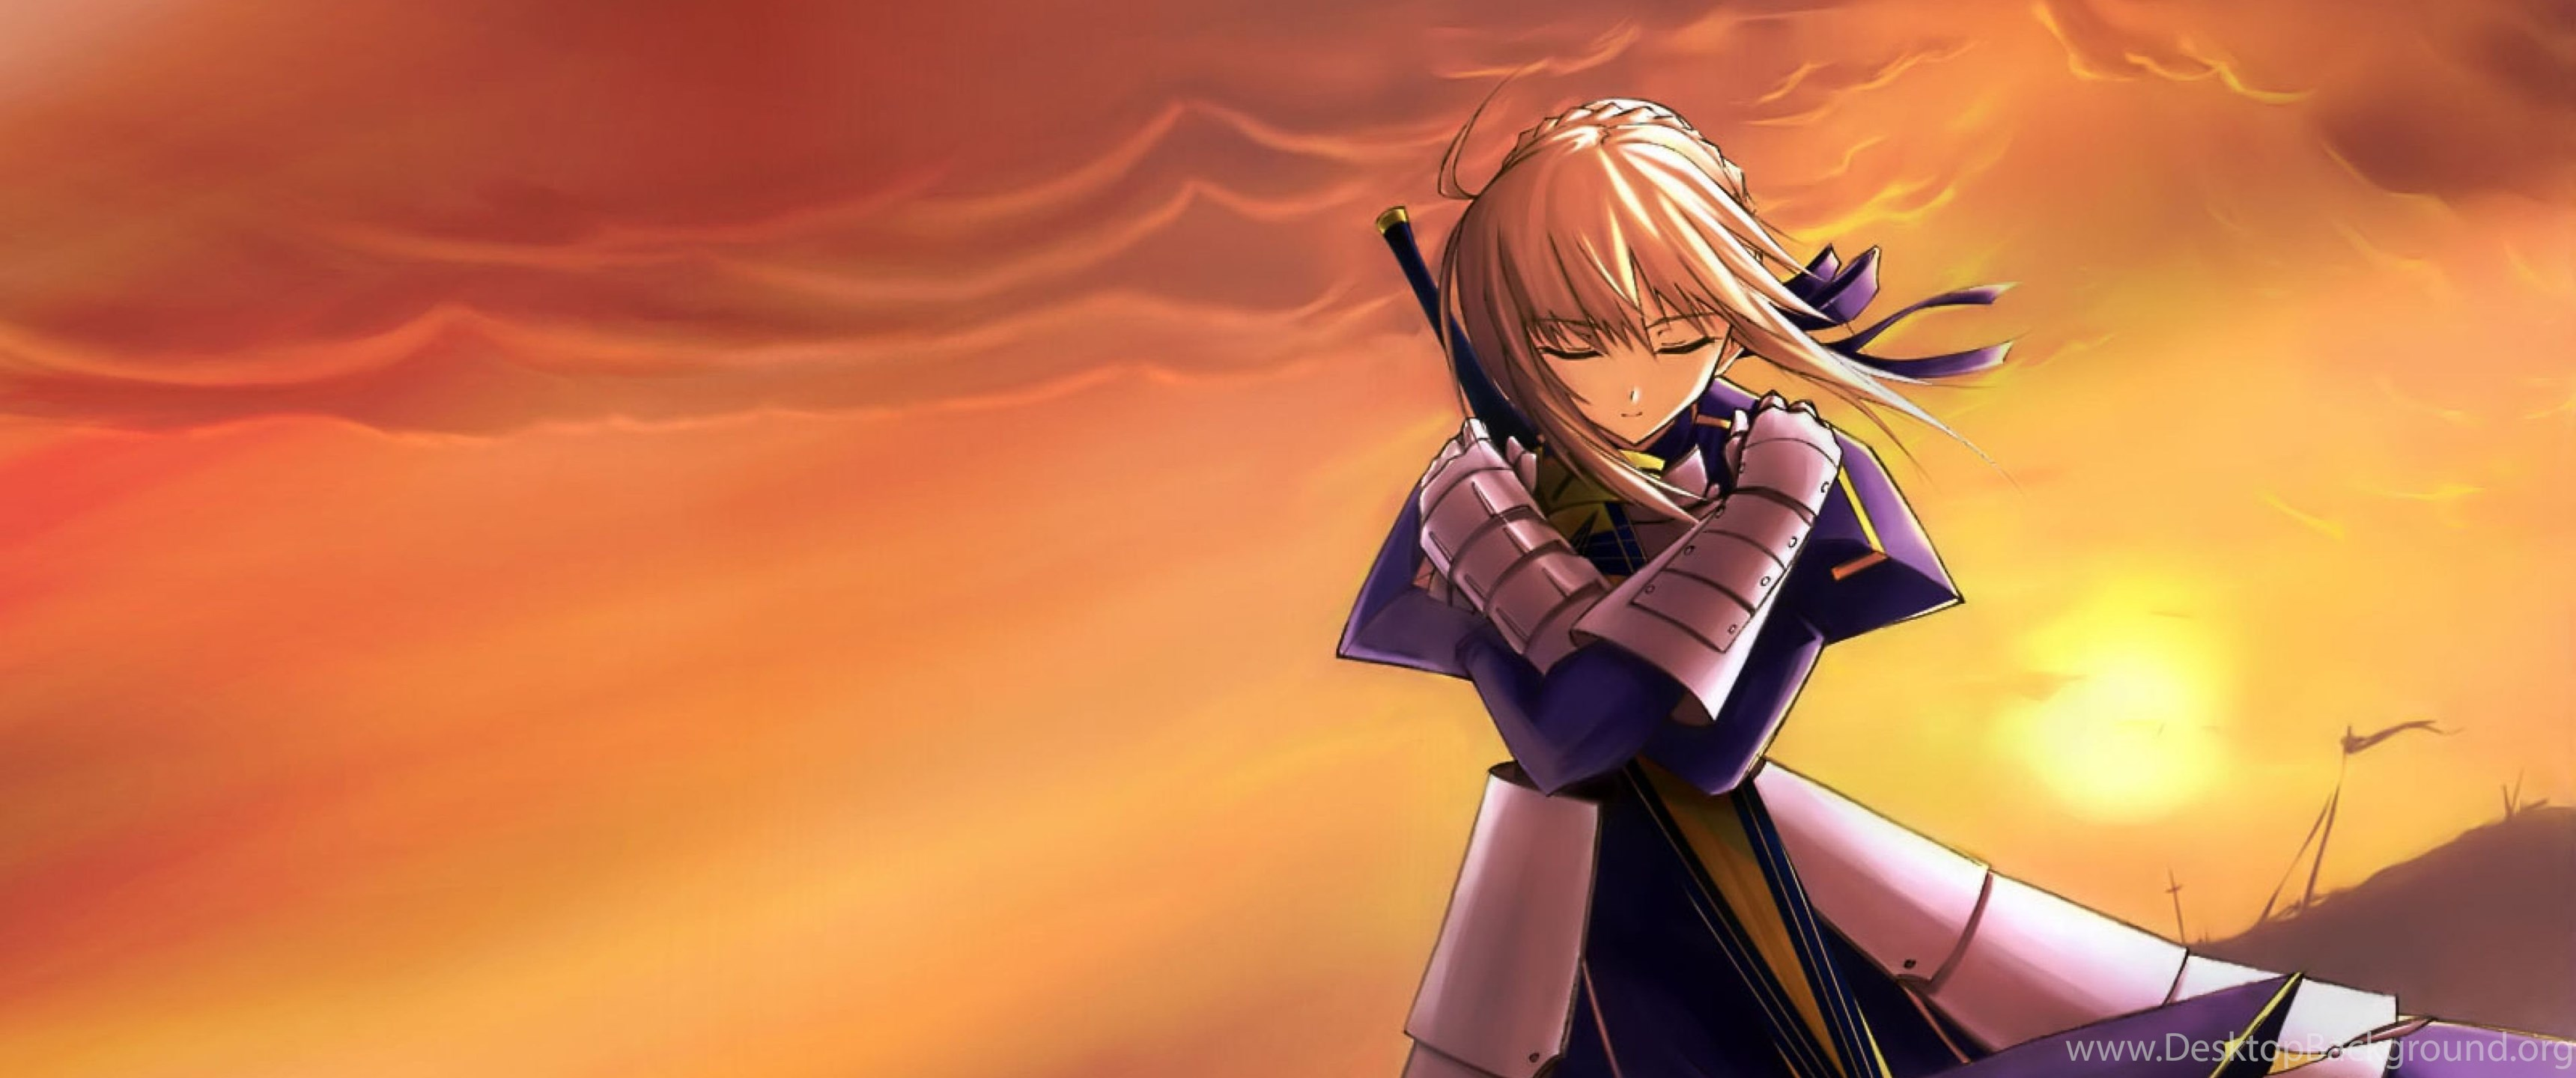 Download Wallpapers 3840x2400 Fate Stay Night Saber Girl Sunset Desktop Background